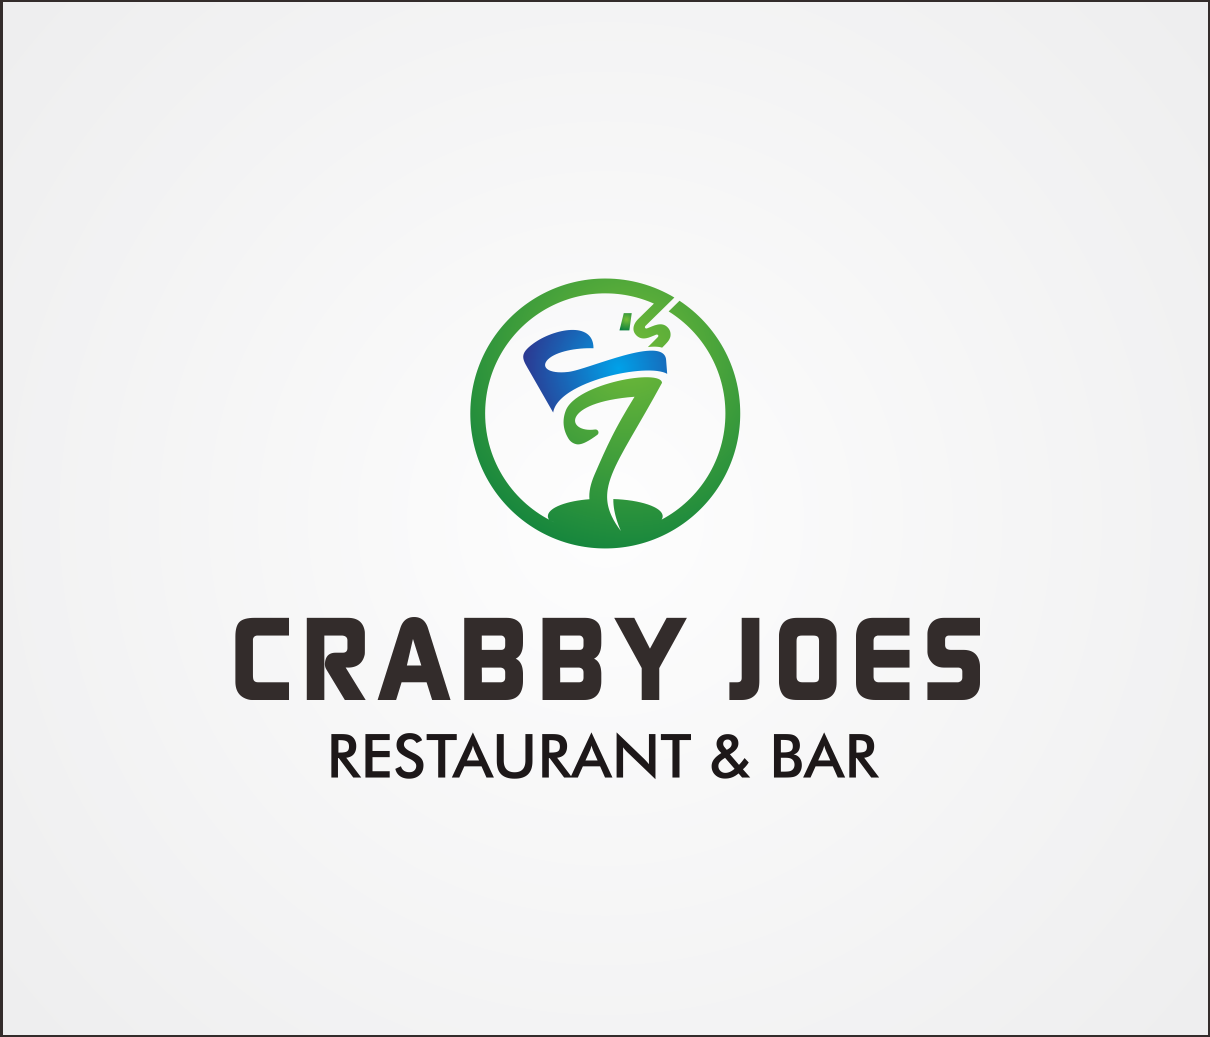 Logo Design by Armada Jamaluddin - Entry No. 125 in the Logo Design Contest Inspiring Logo Design for Cj's.